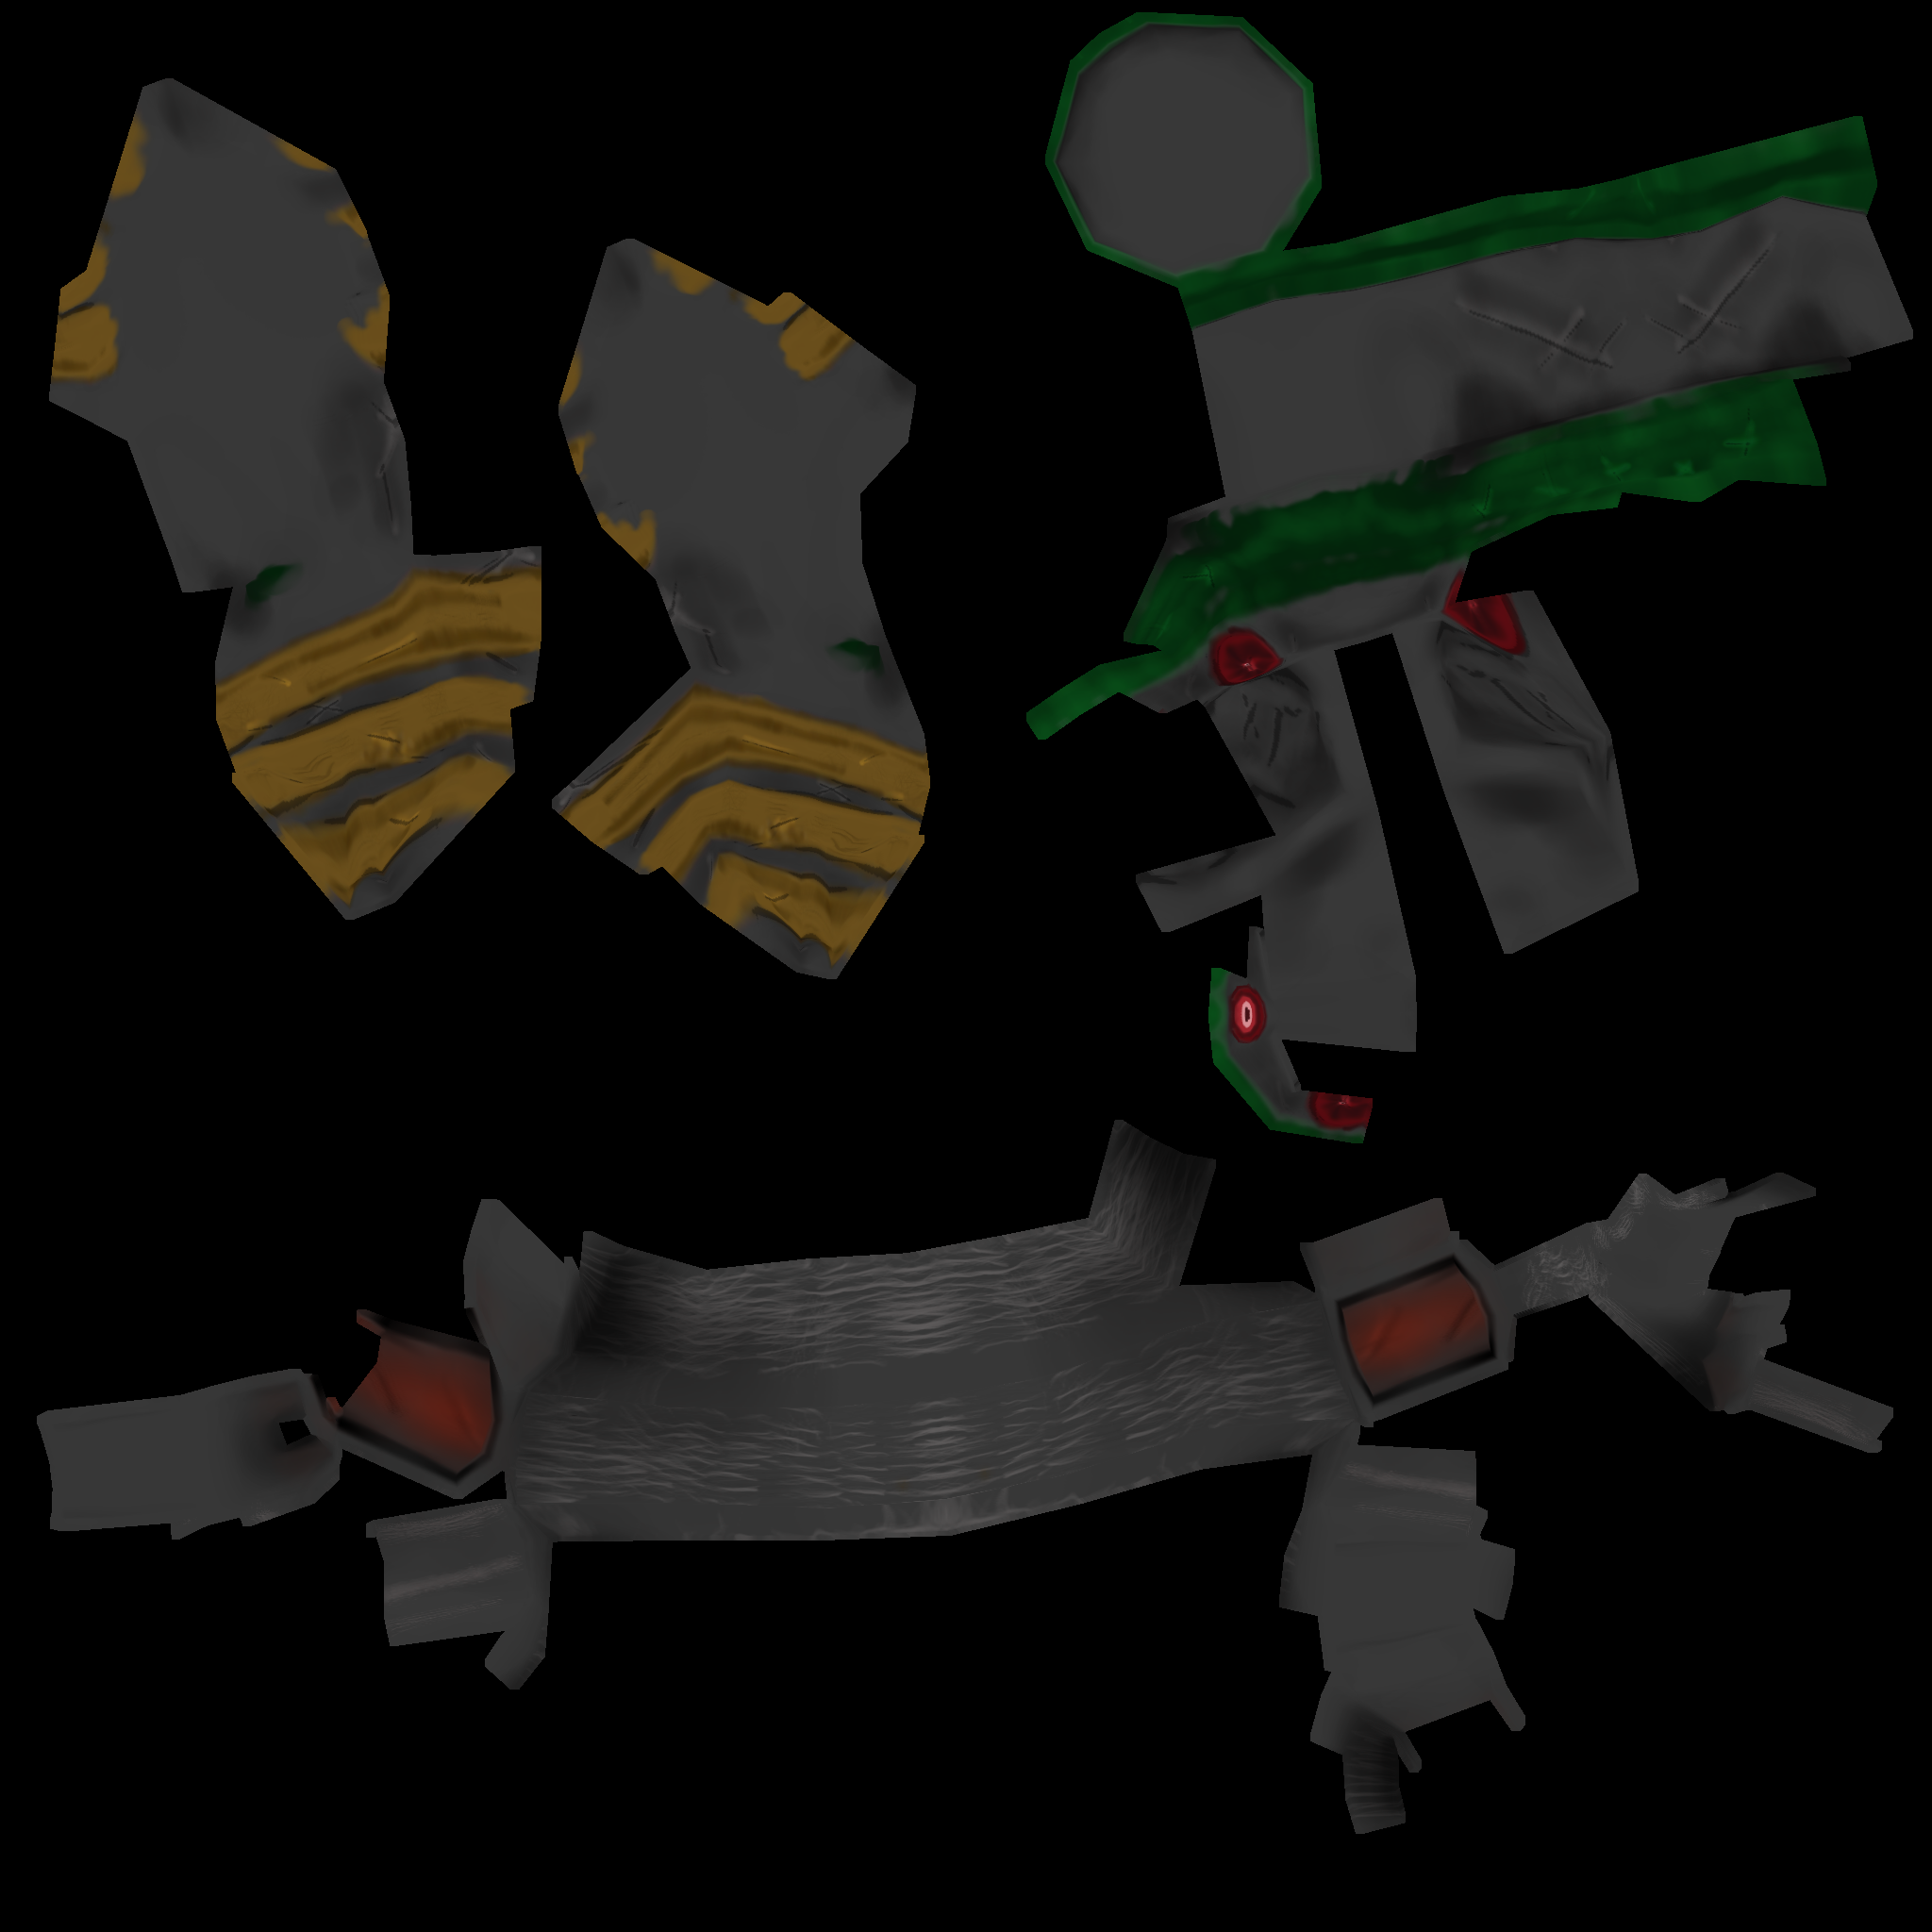 AccessoriesDiffuse.png